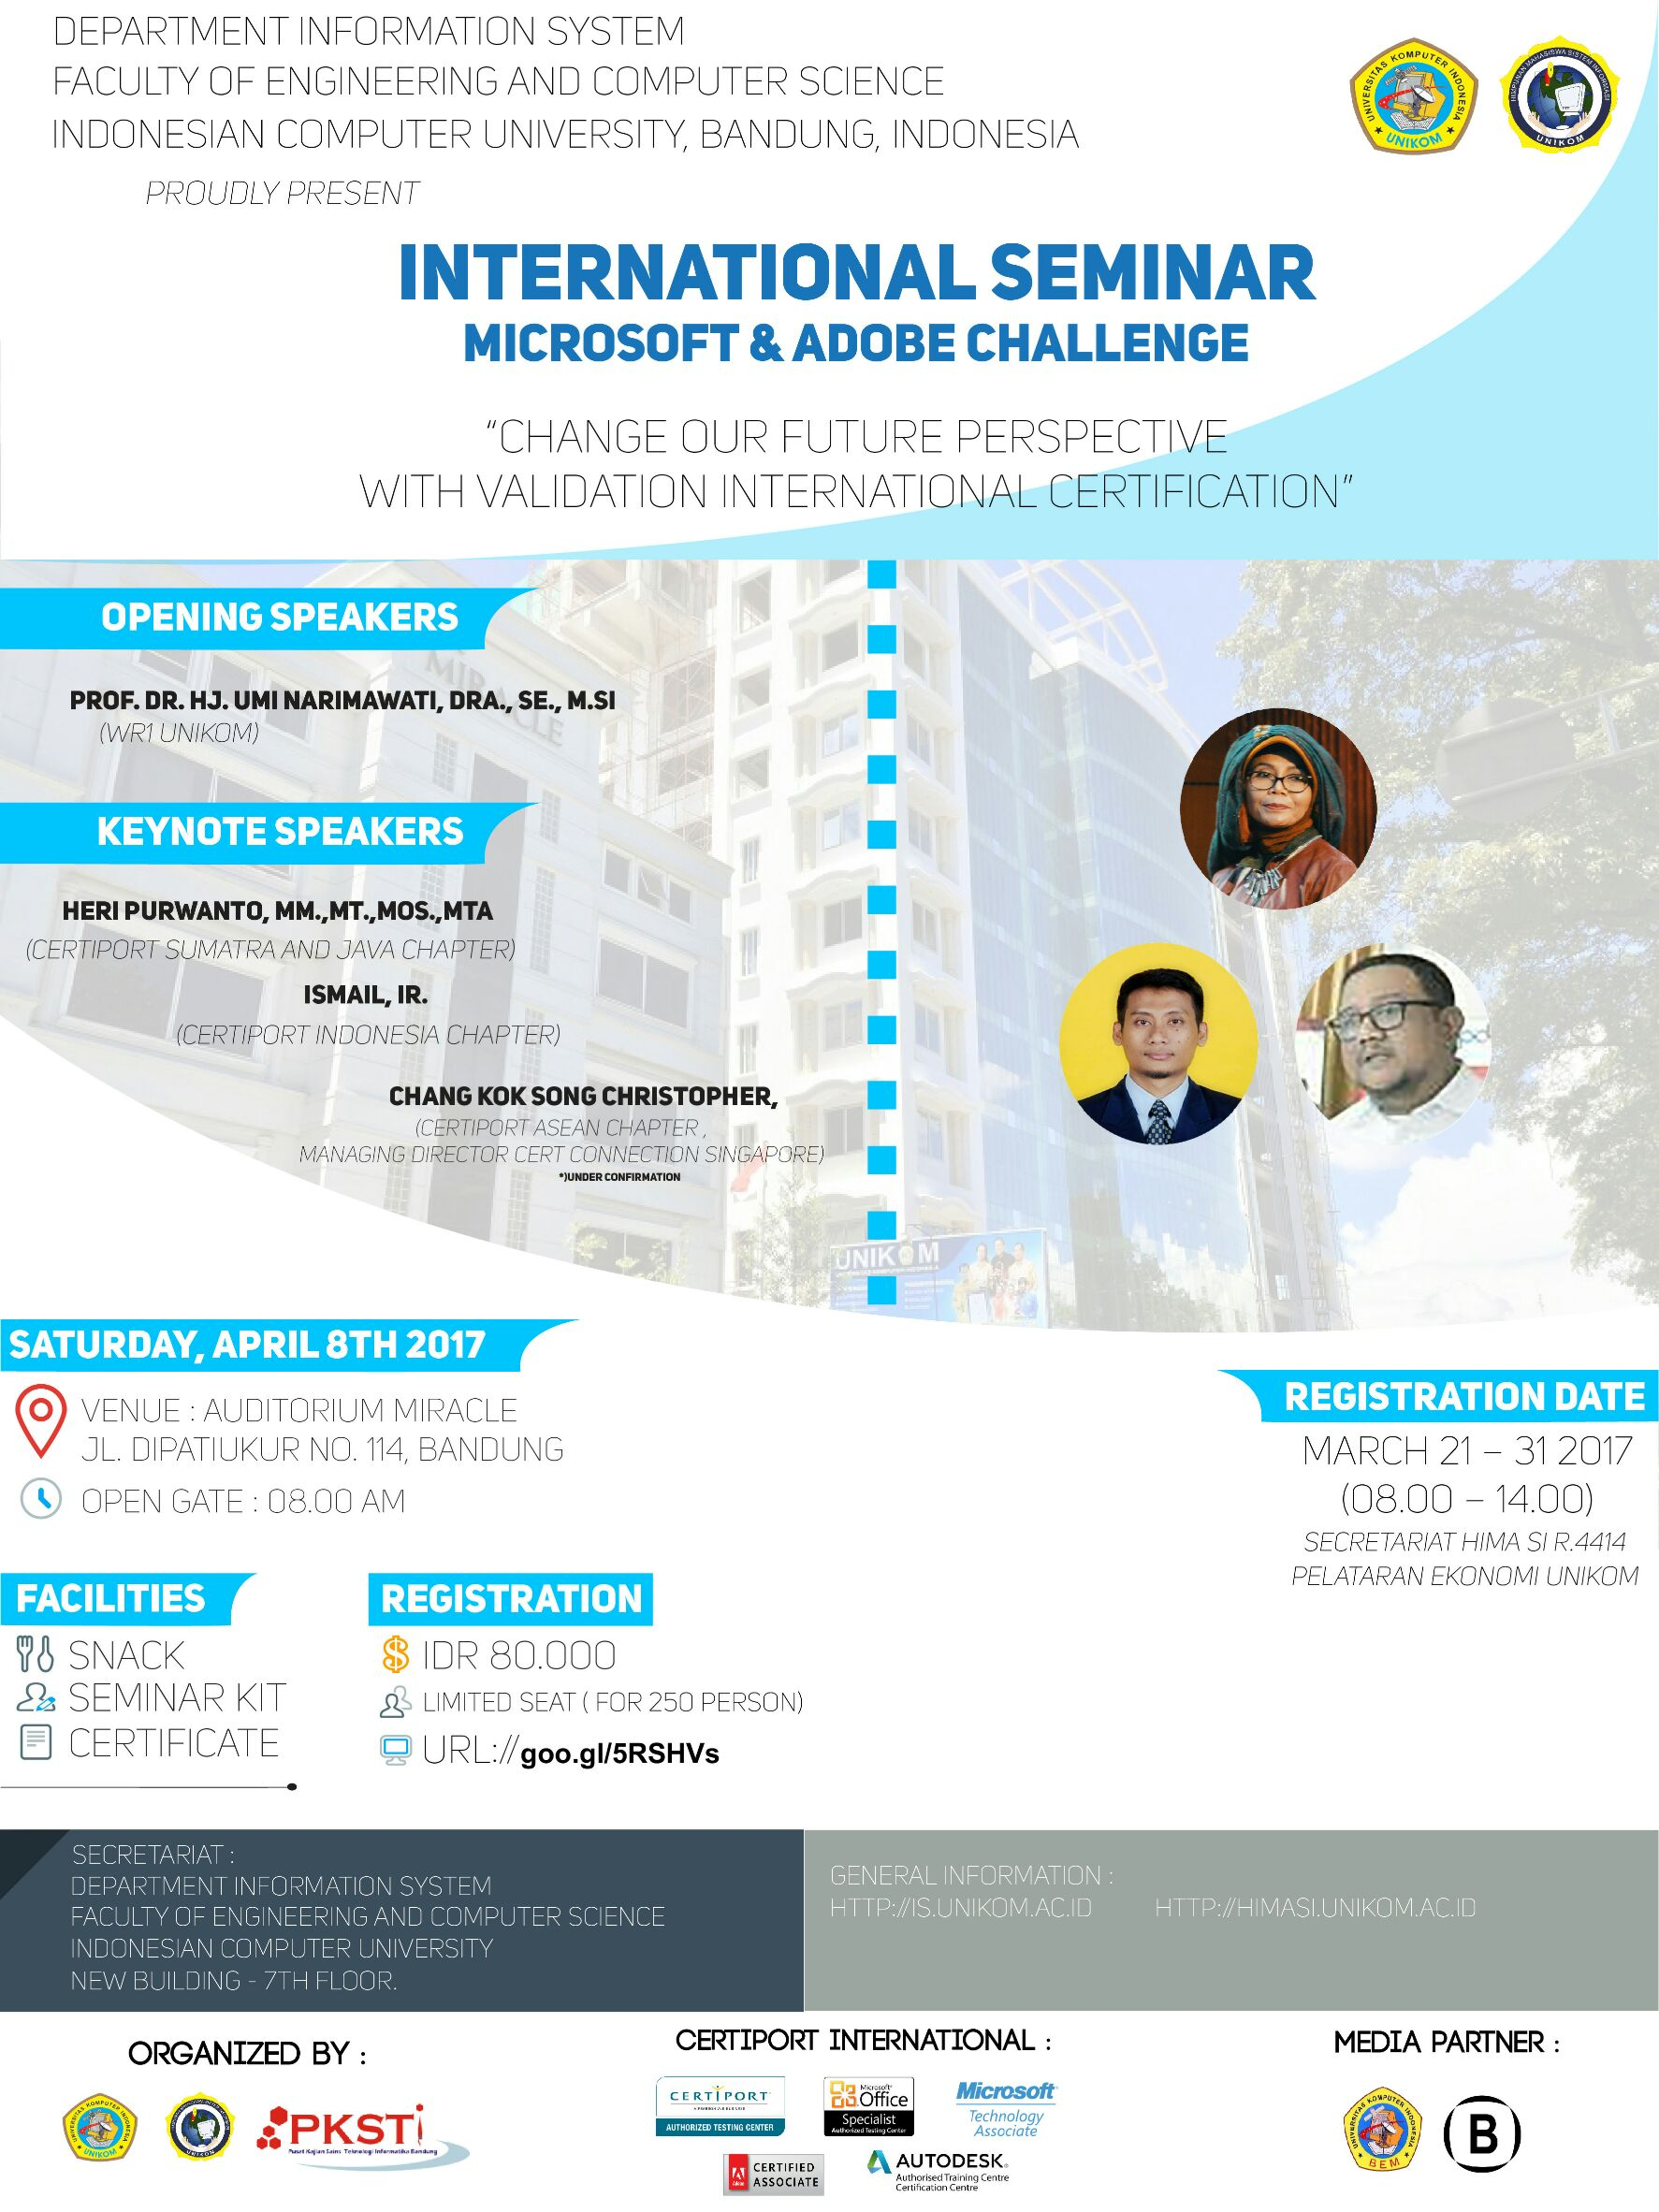 INTERNATIONAL SEMINAR MICROSOFT & ADOBE CHALLENGE